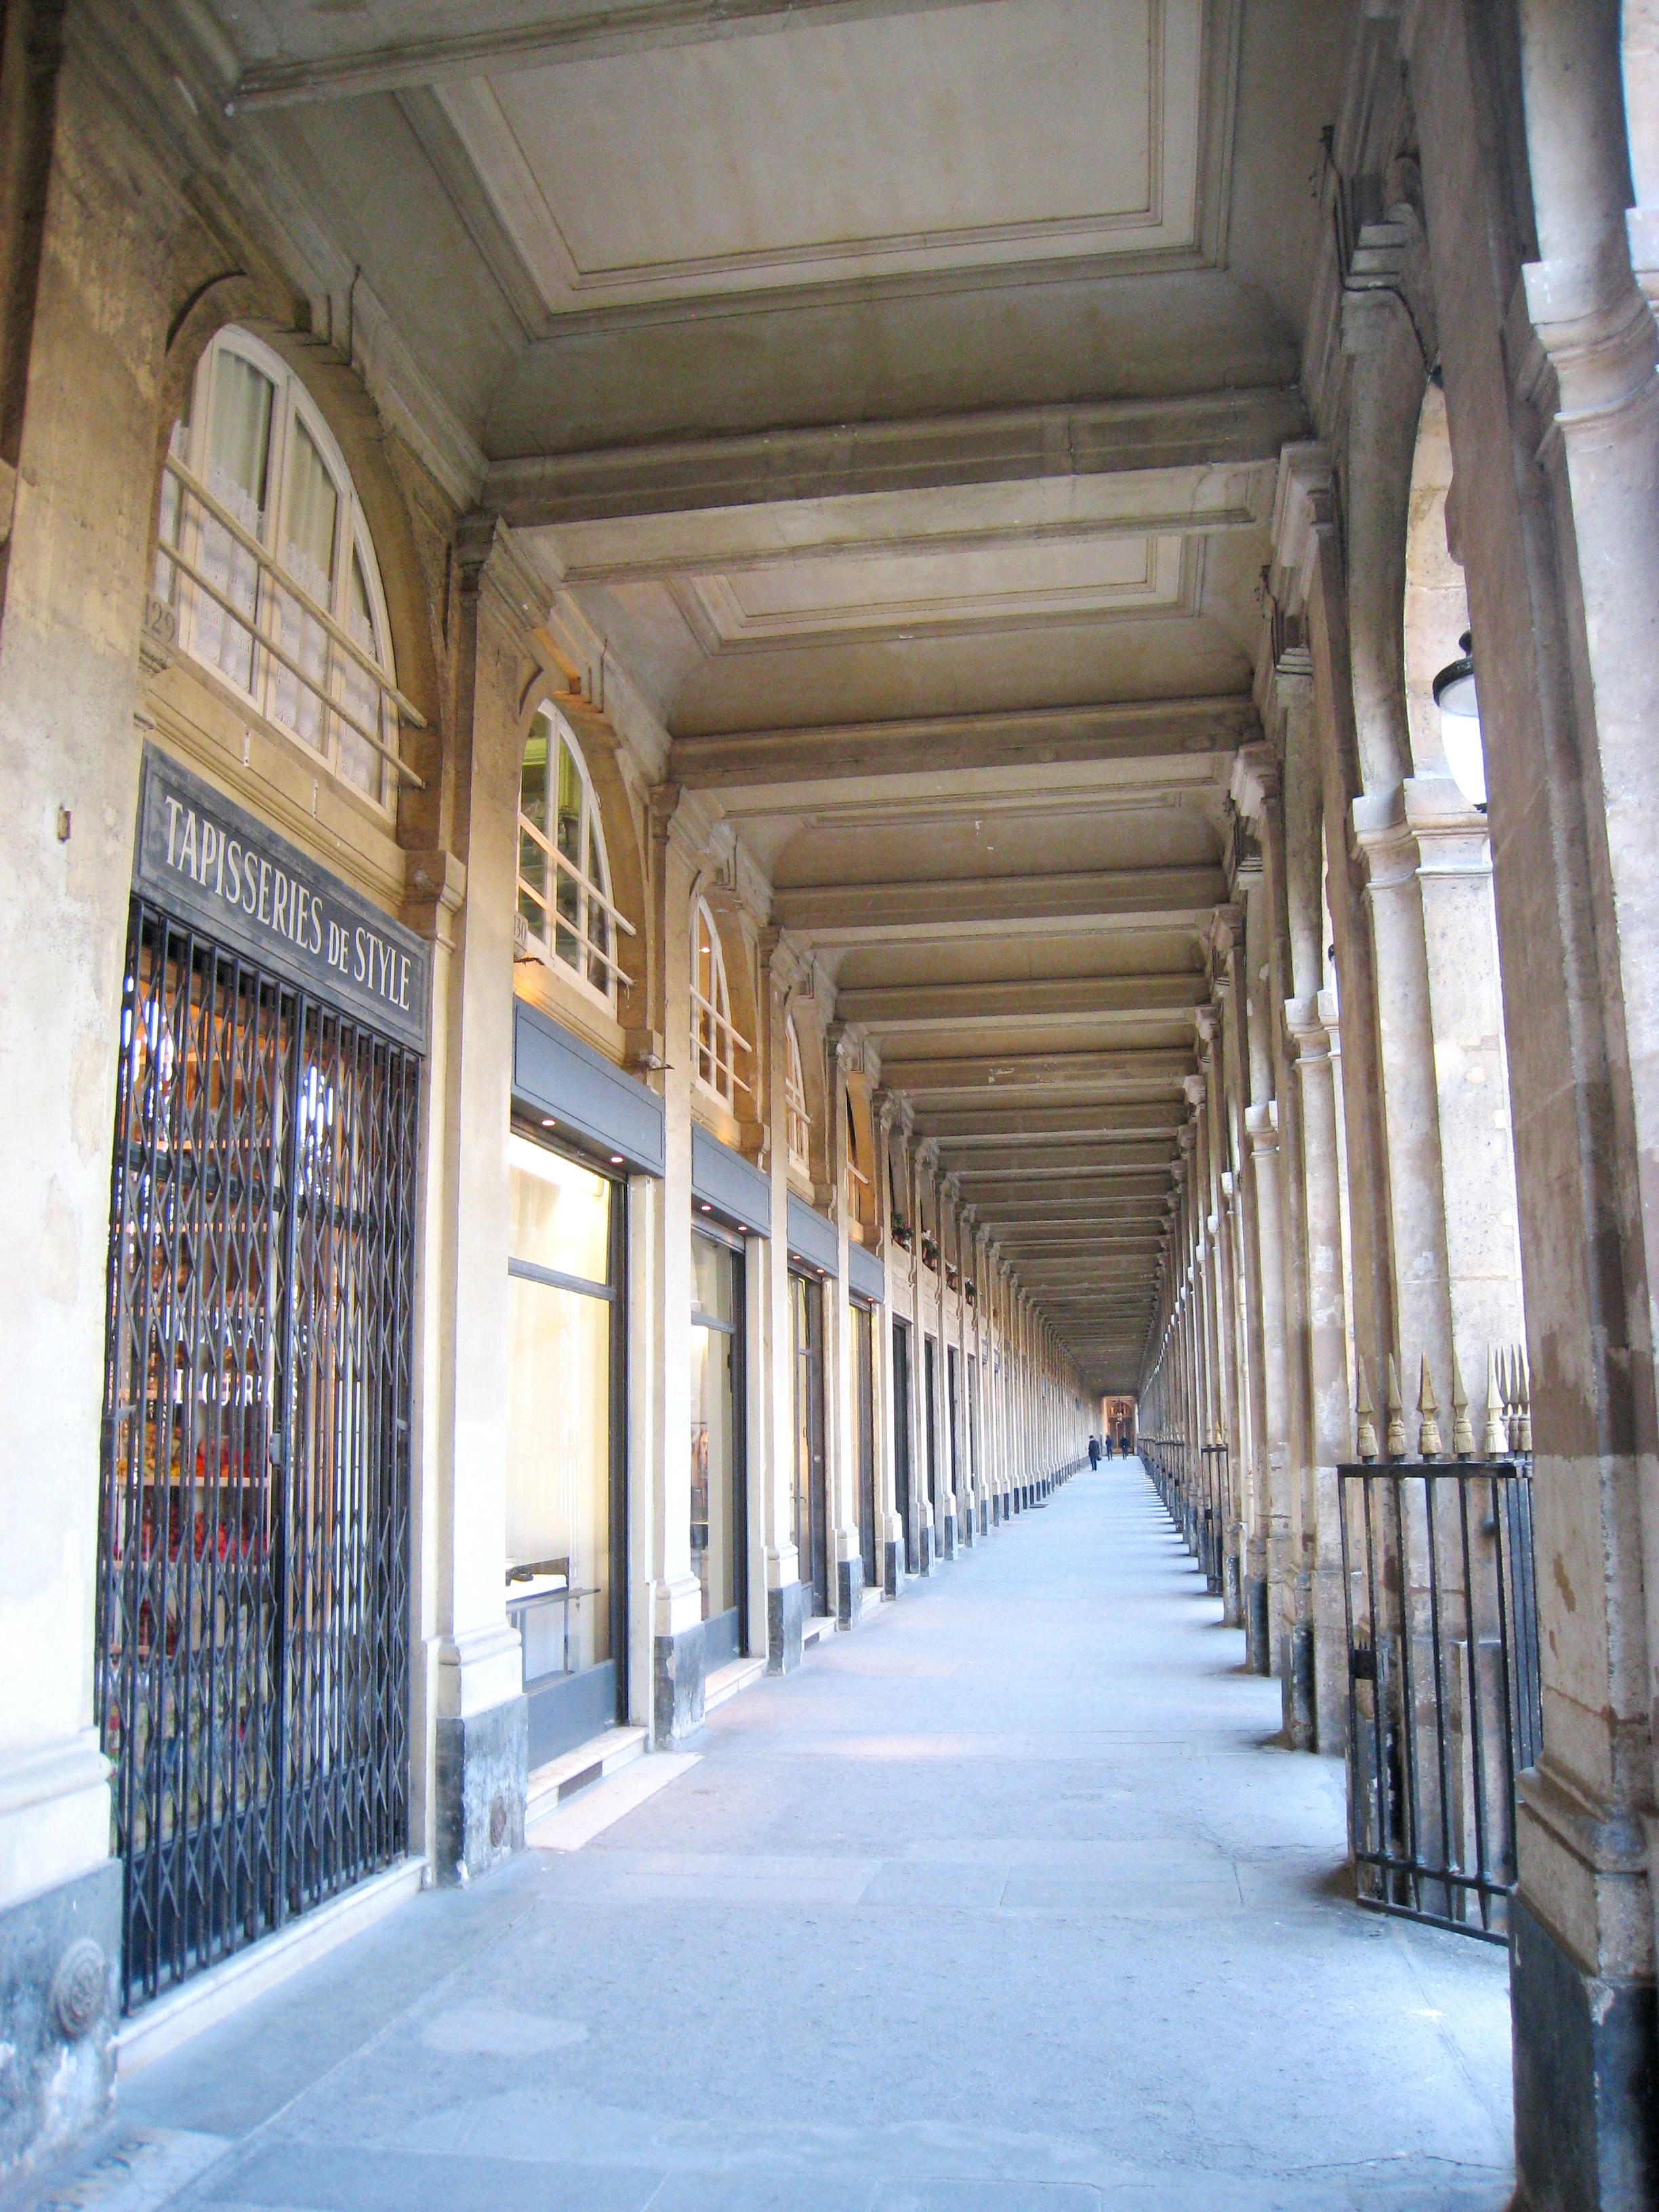 Palais_Royal,_Paris_-_arcade wiki commons